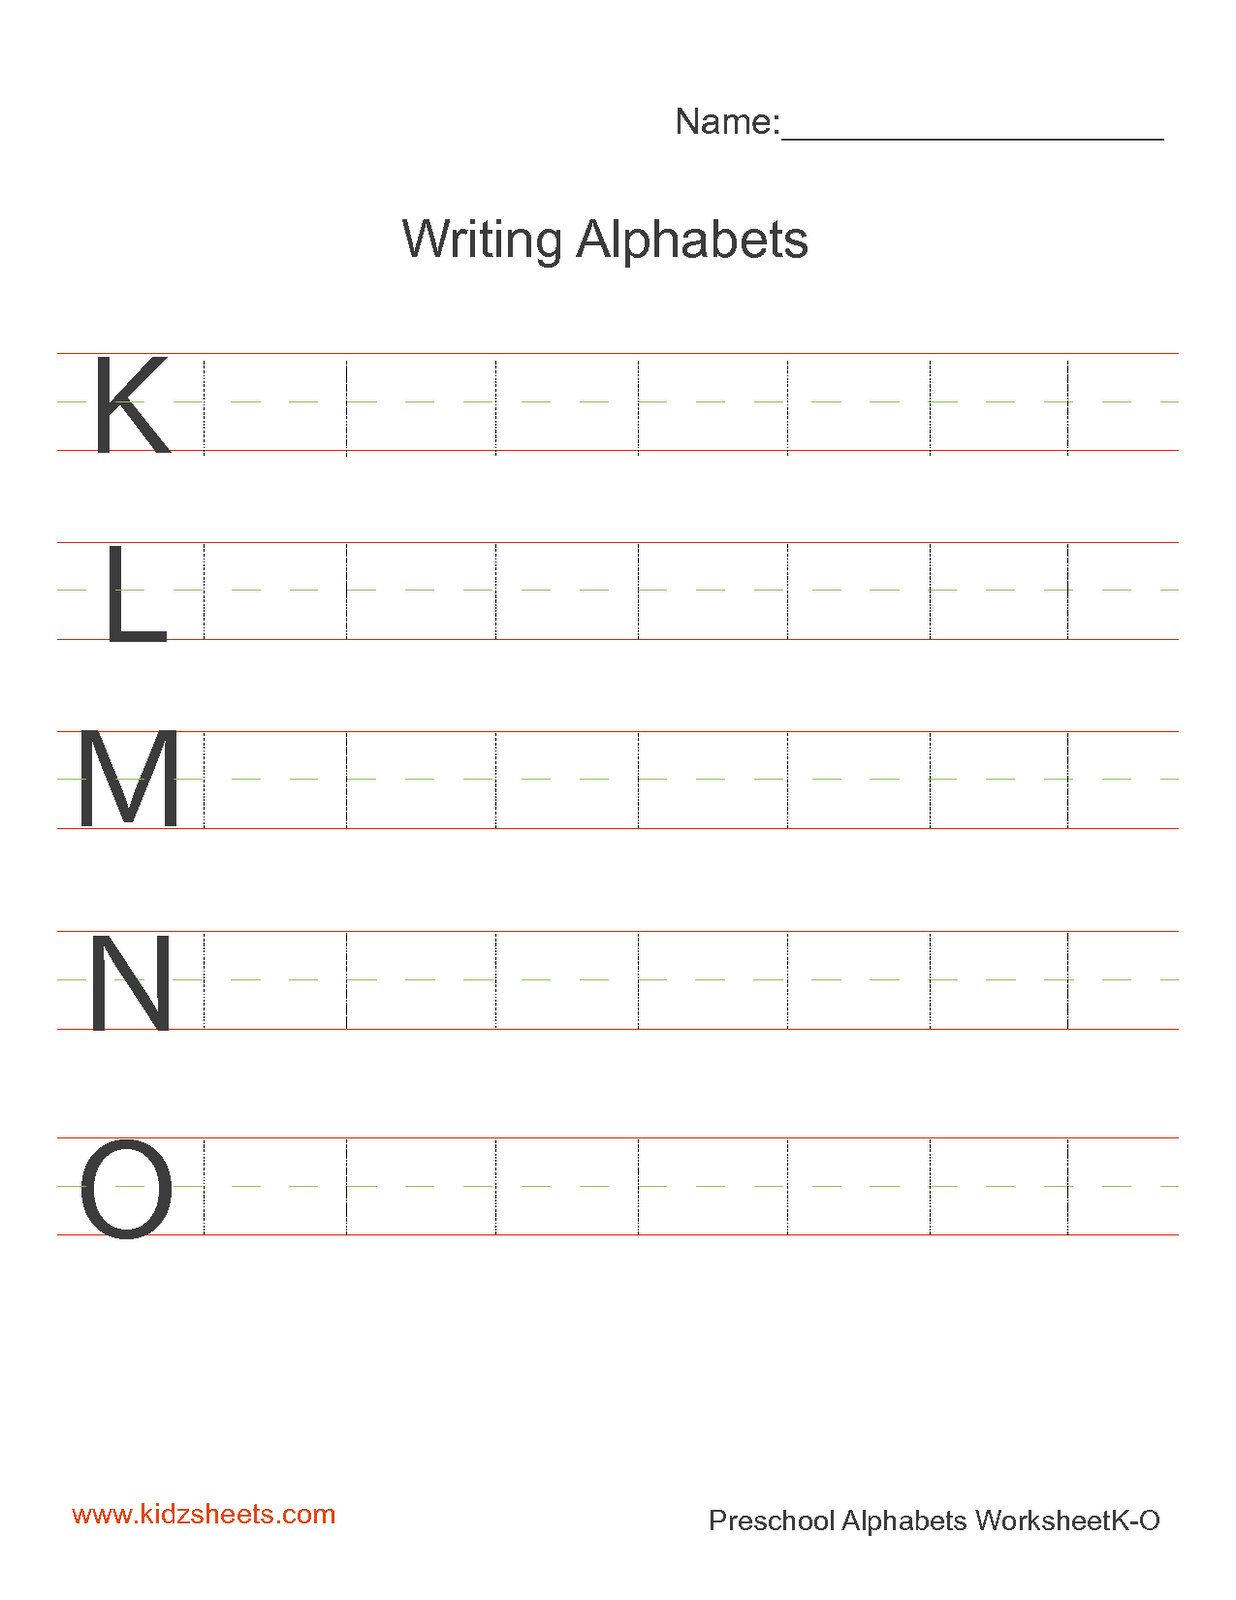 Kidz Worksheets Preschool Writing Alphabets Worksheet3